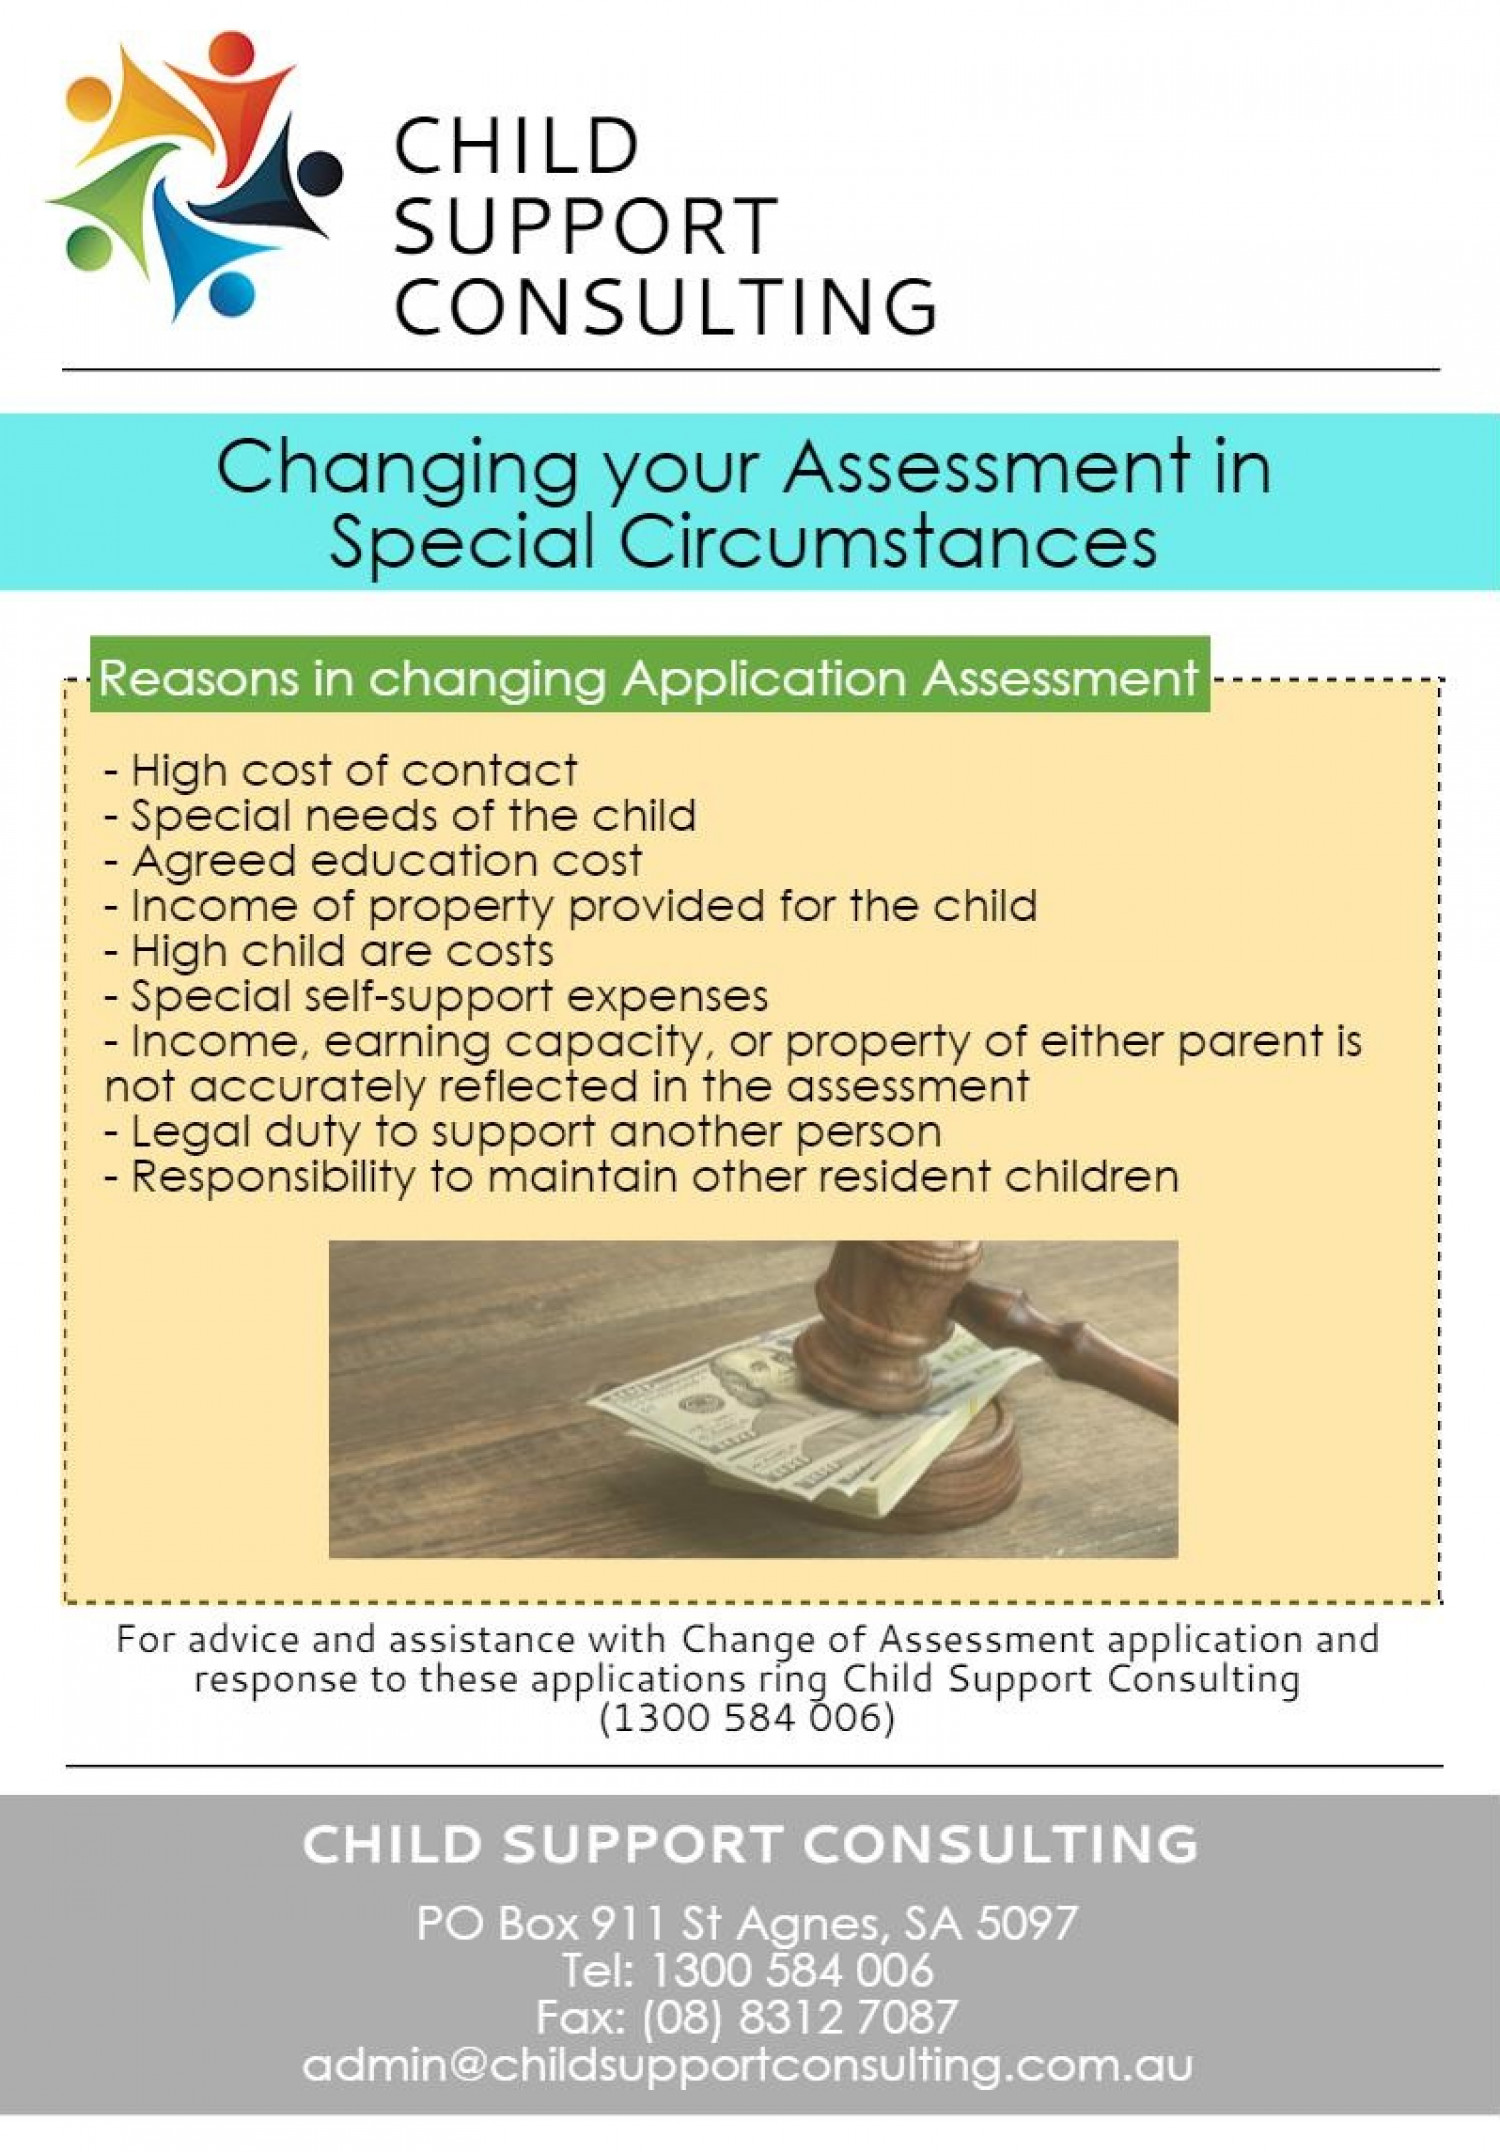 Changing your Assessment in Special Circumstances Infographic